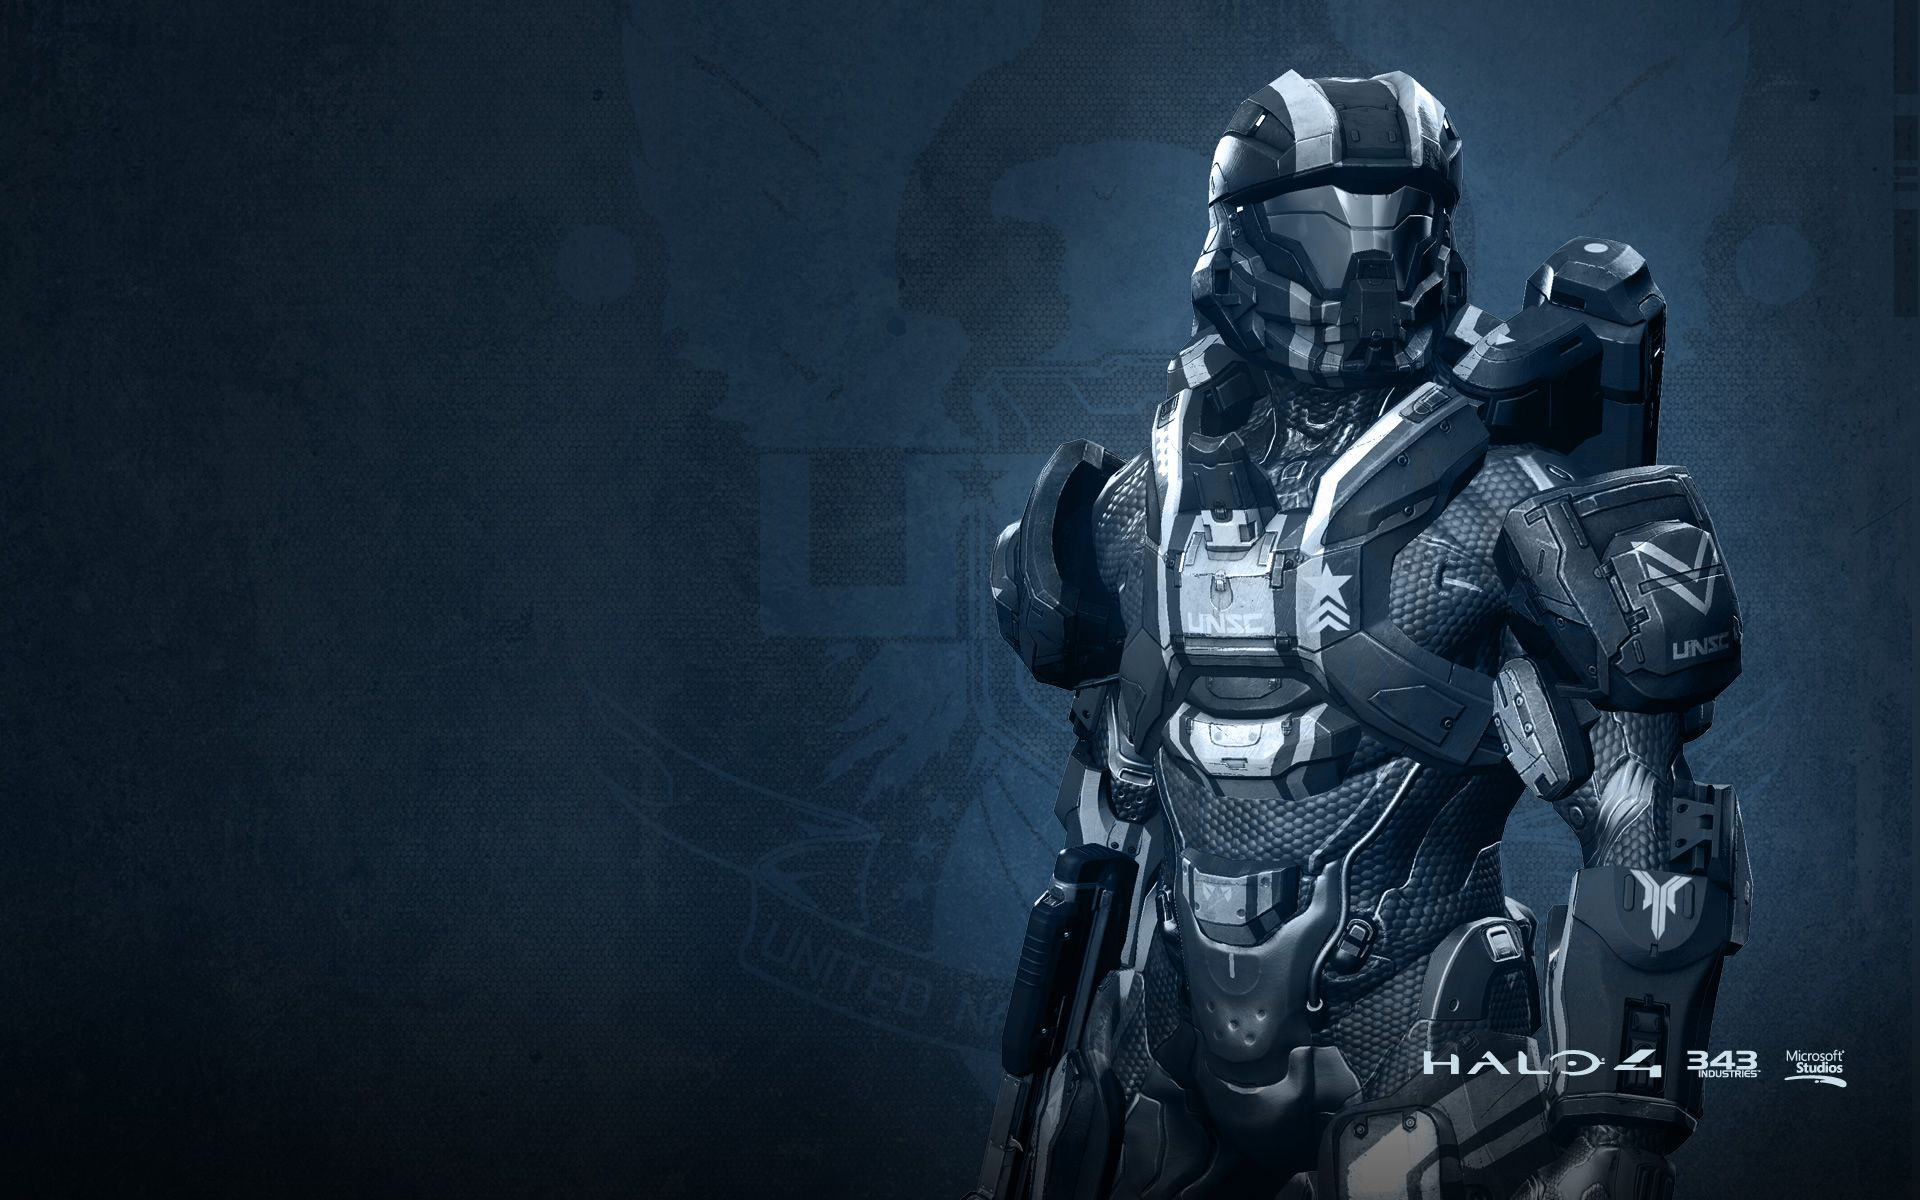 Halo Odst Hd Wallpapers Backgrounds Wallpaper 1920 1080 Halo